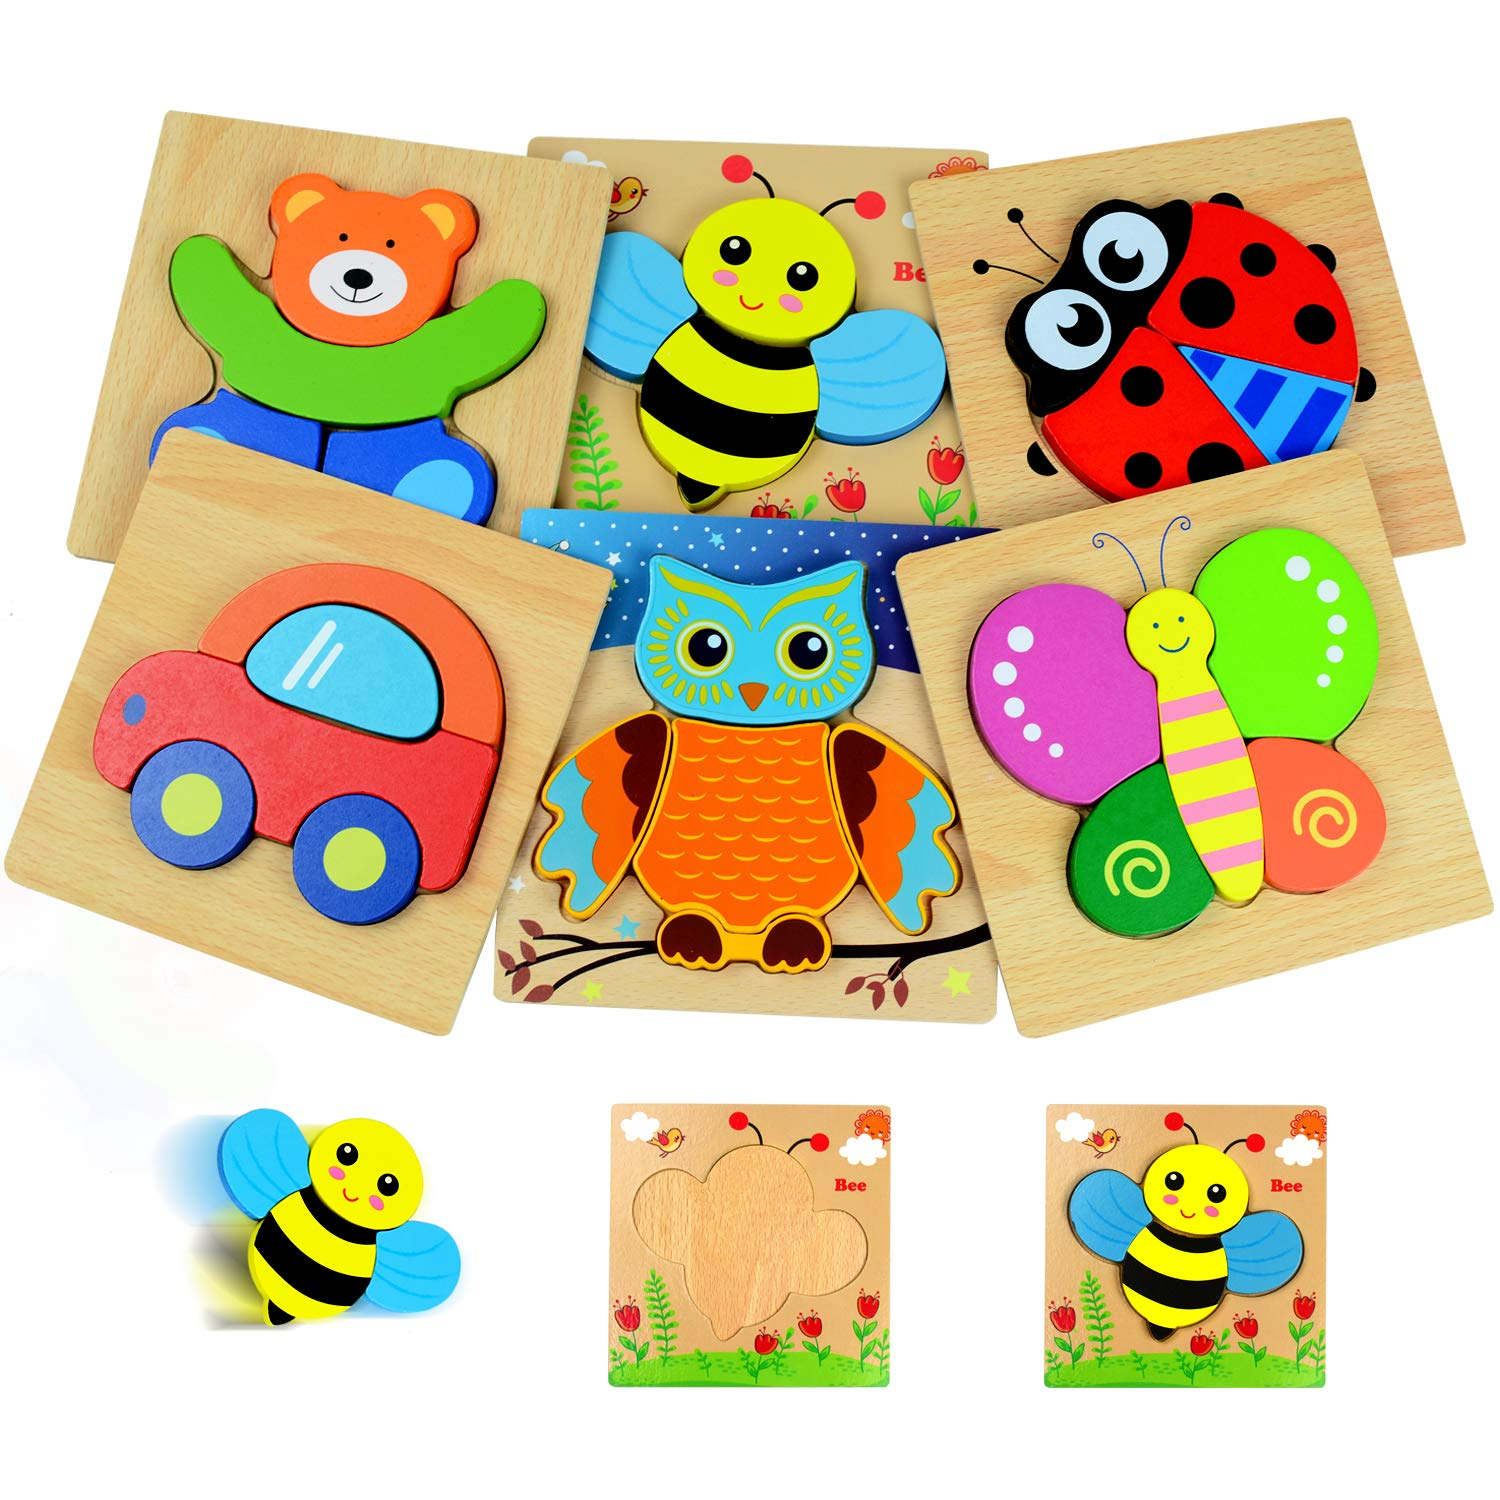 Kulariworld 6 Pieces Wooden Puzzles Toys for Toddlers Boys Girls Kids 1 2 3 Years Old Preschool Gift by Kulariworld